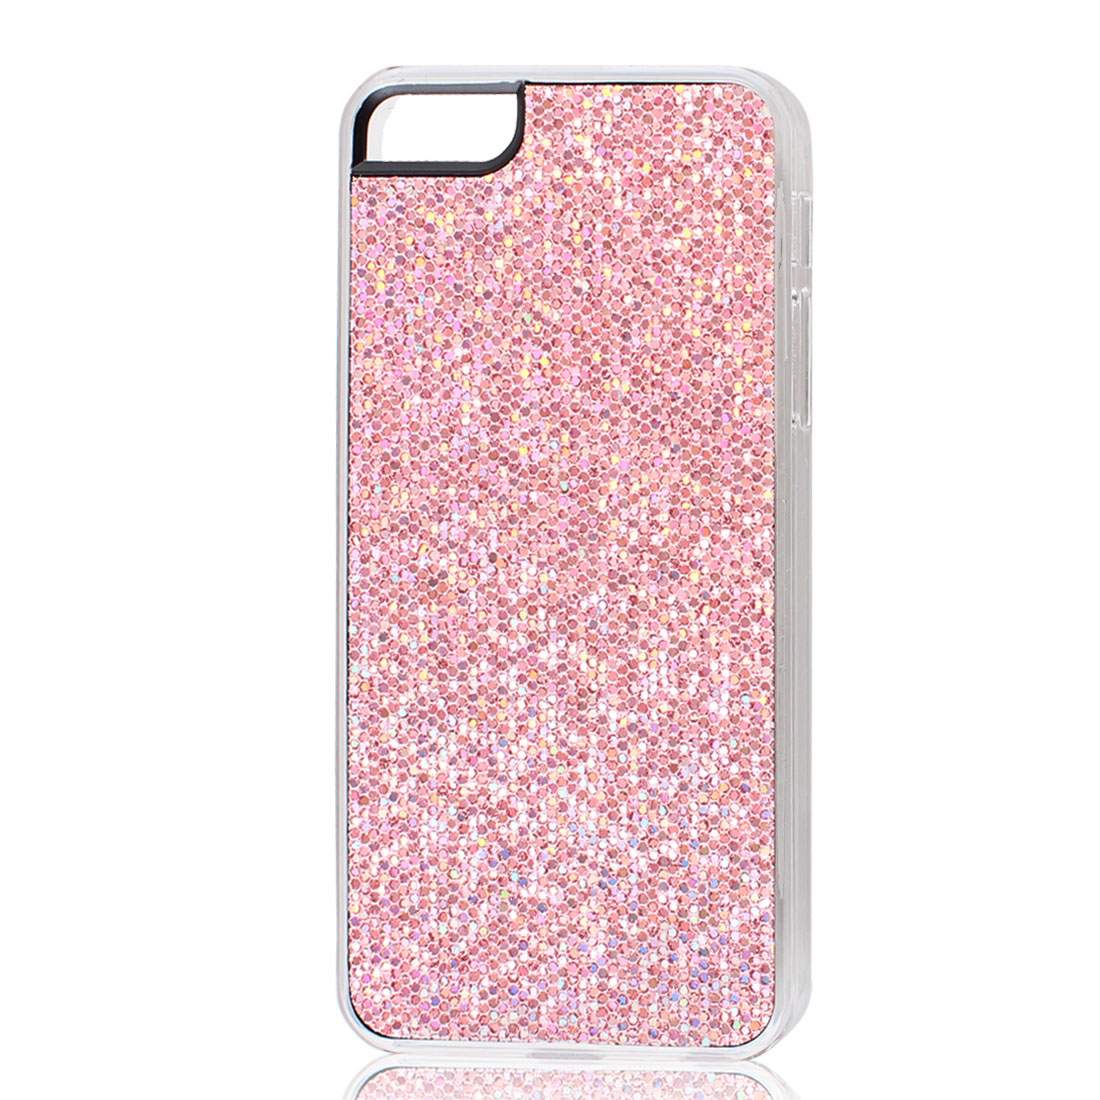 Dark Pink Sparkle Glitter Hexagons Hard Back Case Cover for iPhone 5 5G